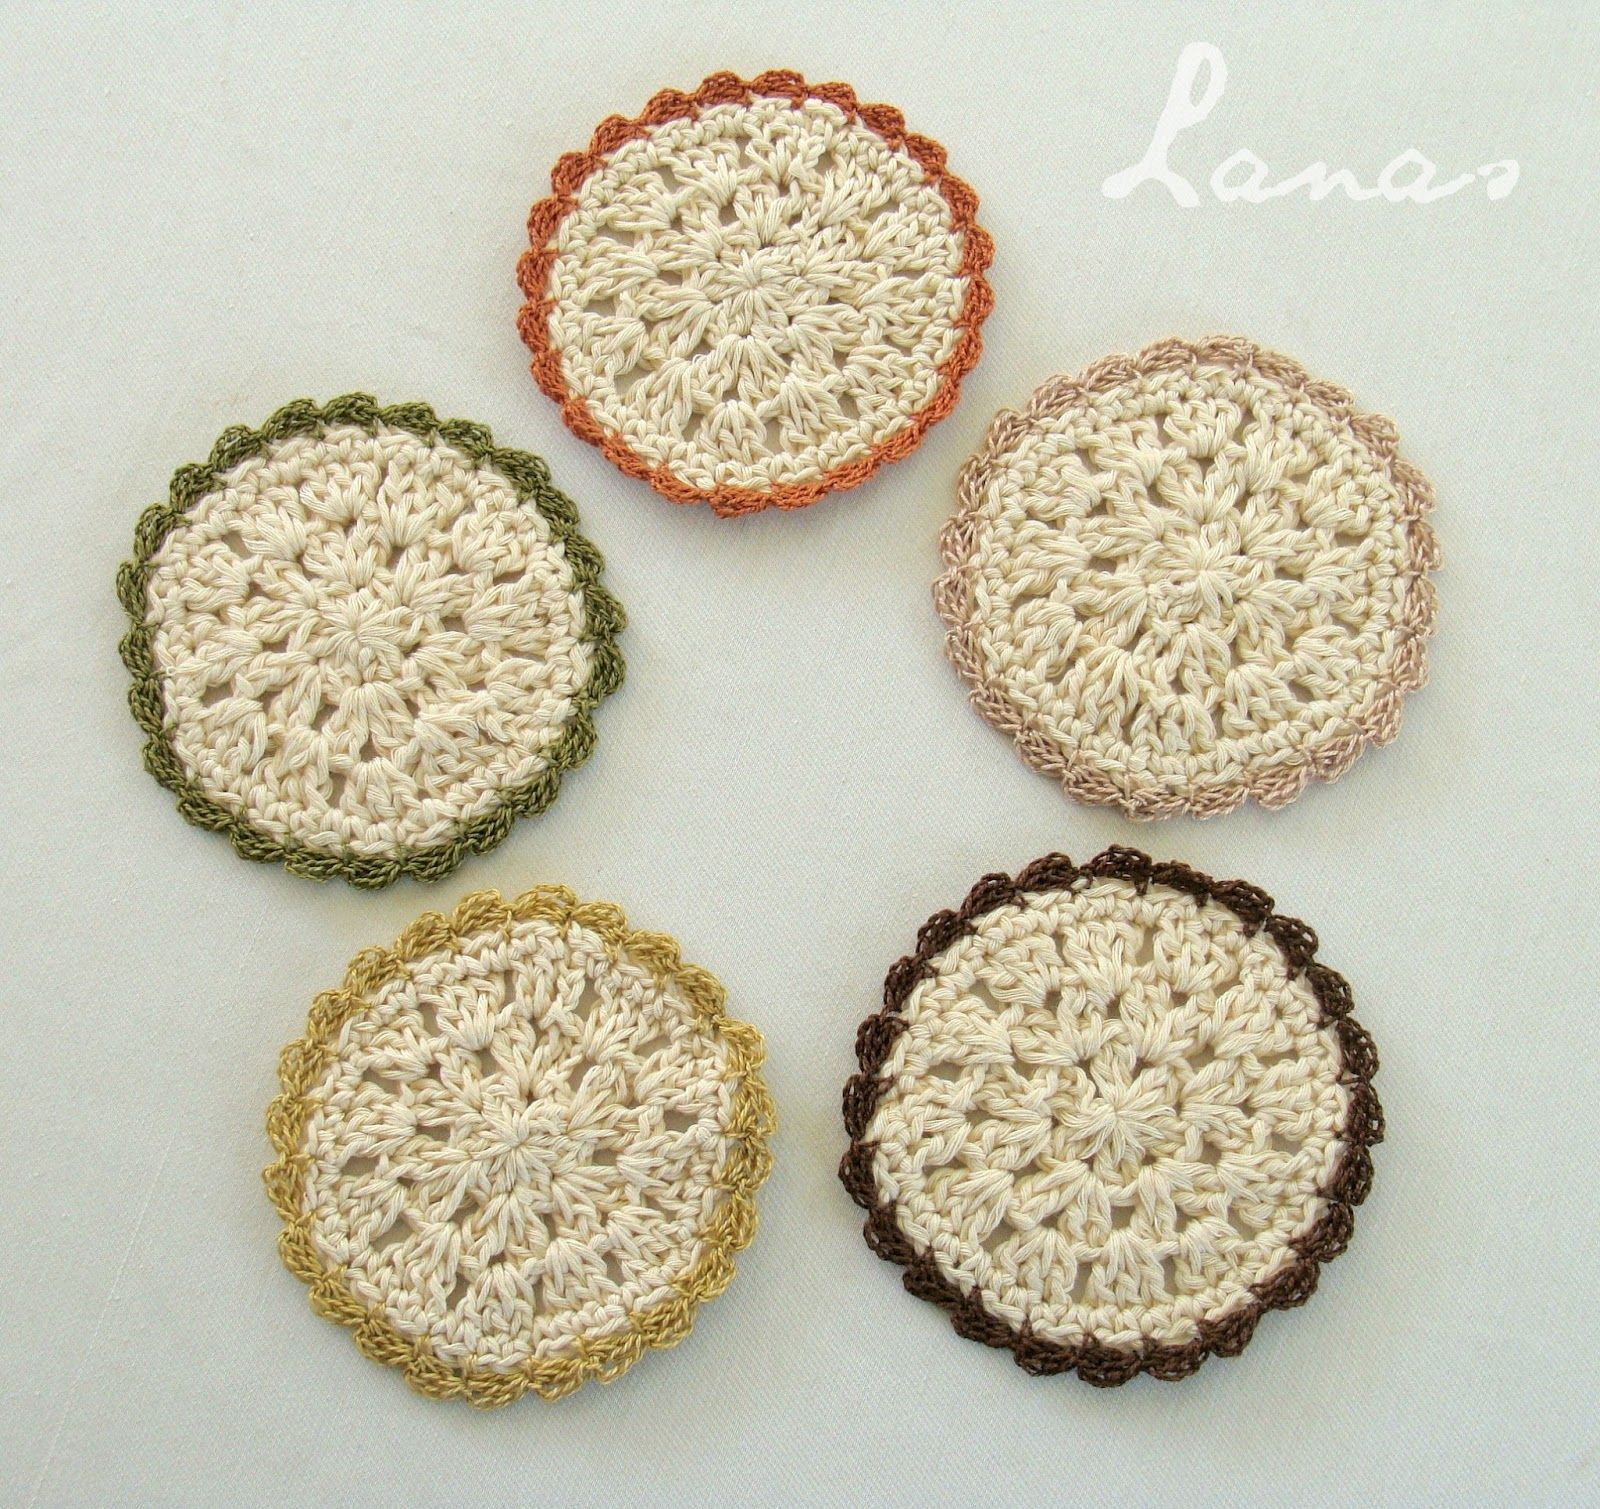 """Crochet) As promised, here is the pattern for the """"Bloom Coasters ..."""